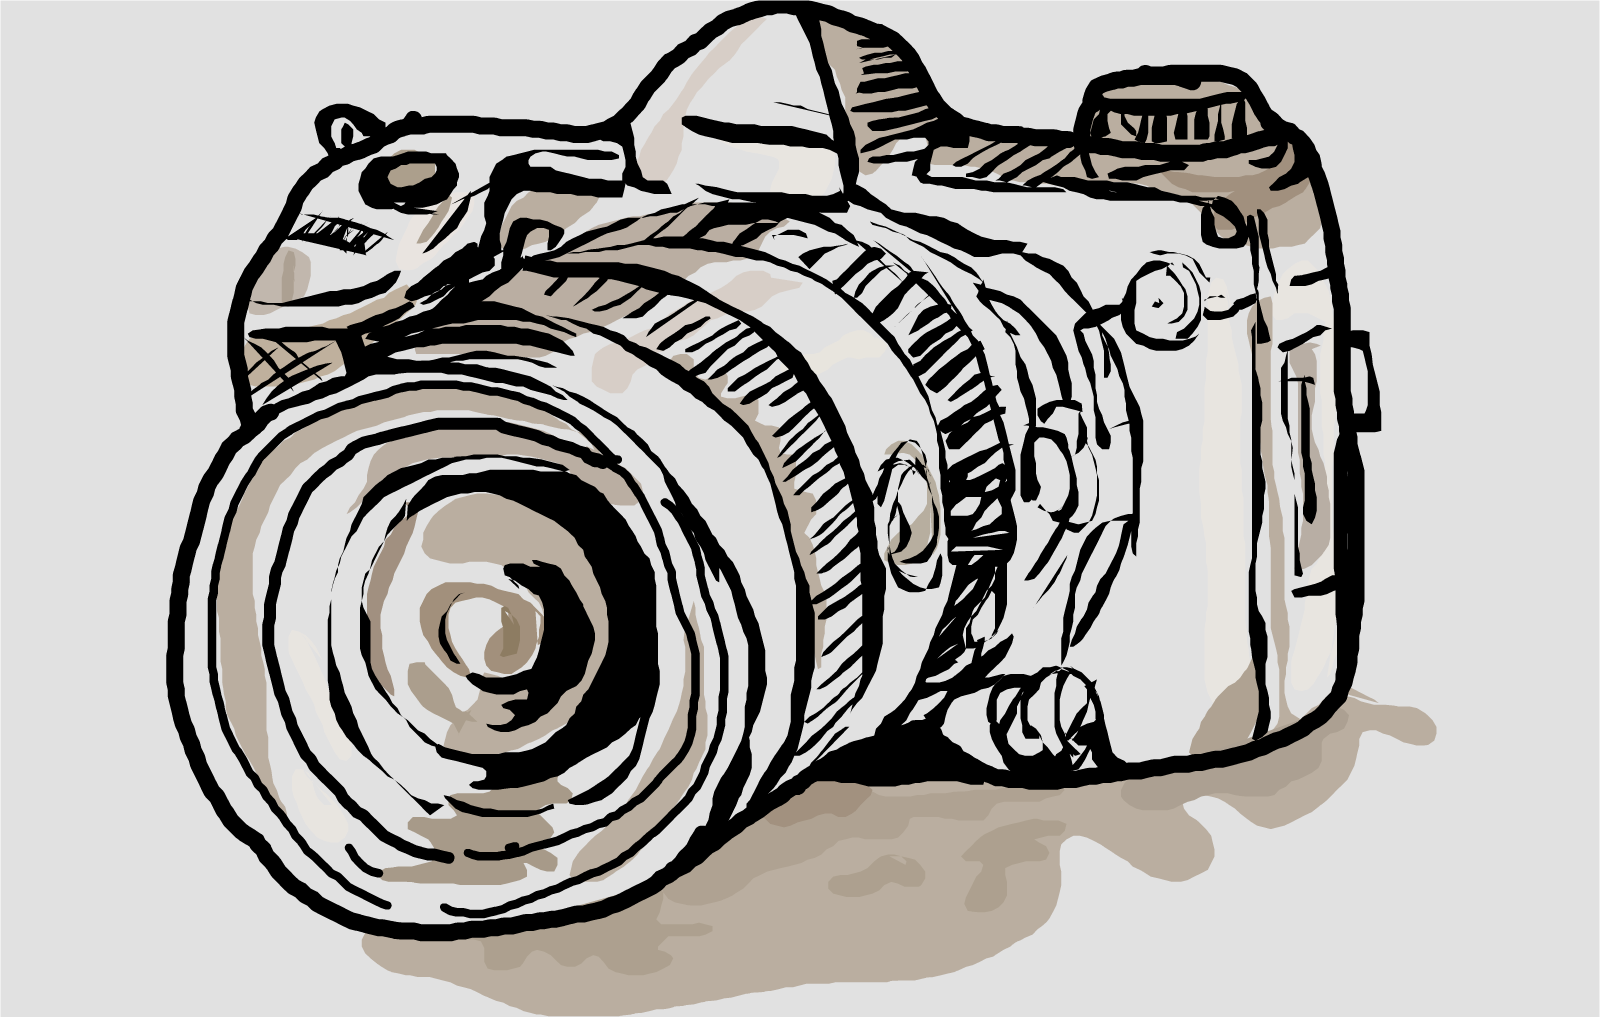 Camera » drawings » SketchPort